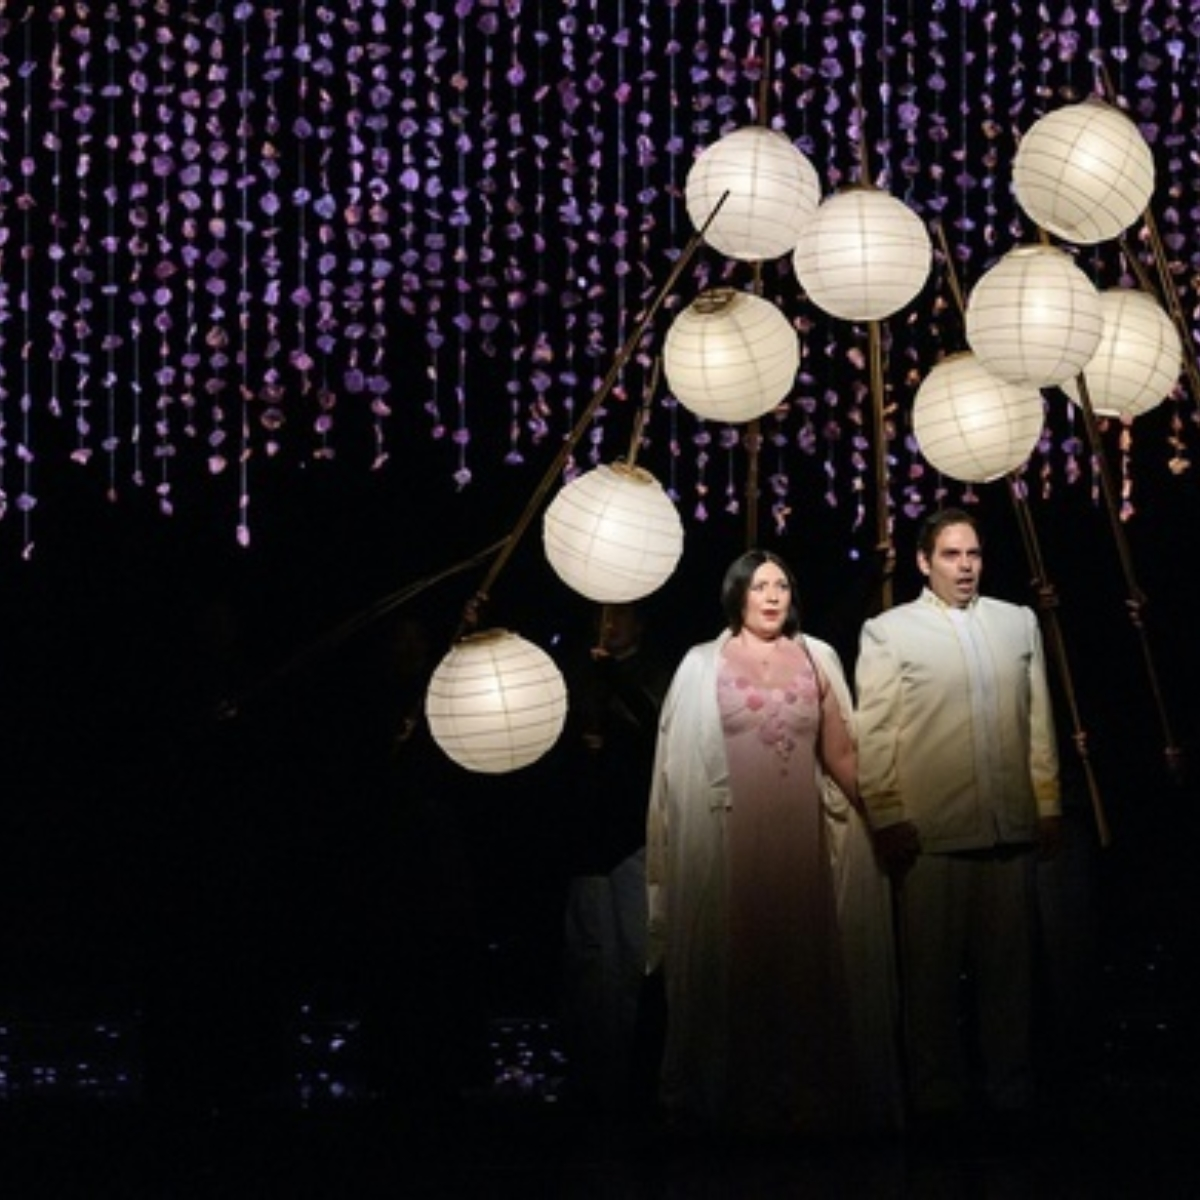 Madam Butterfly Images